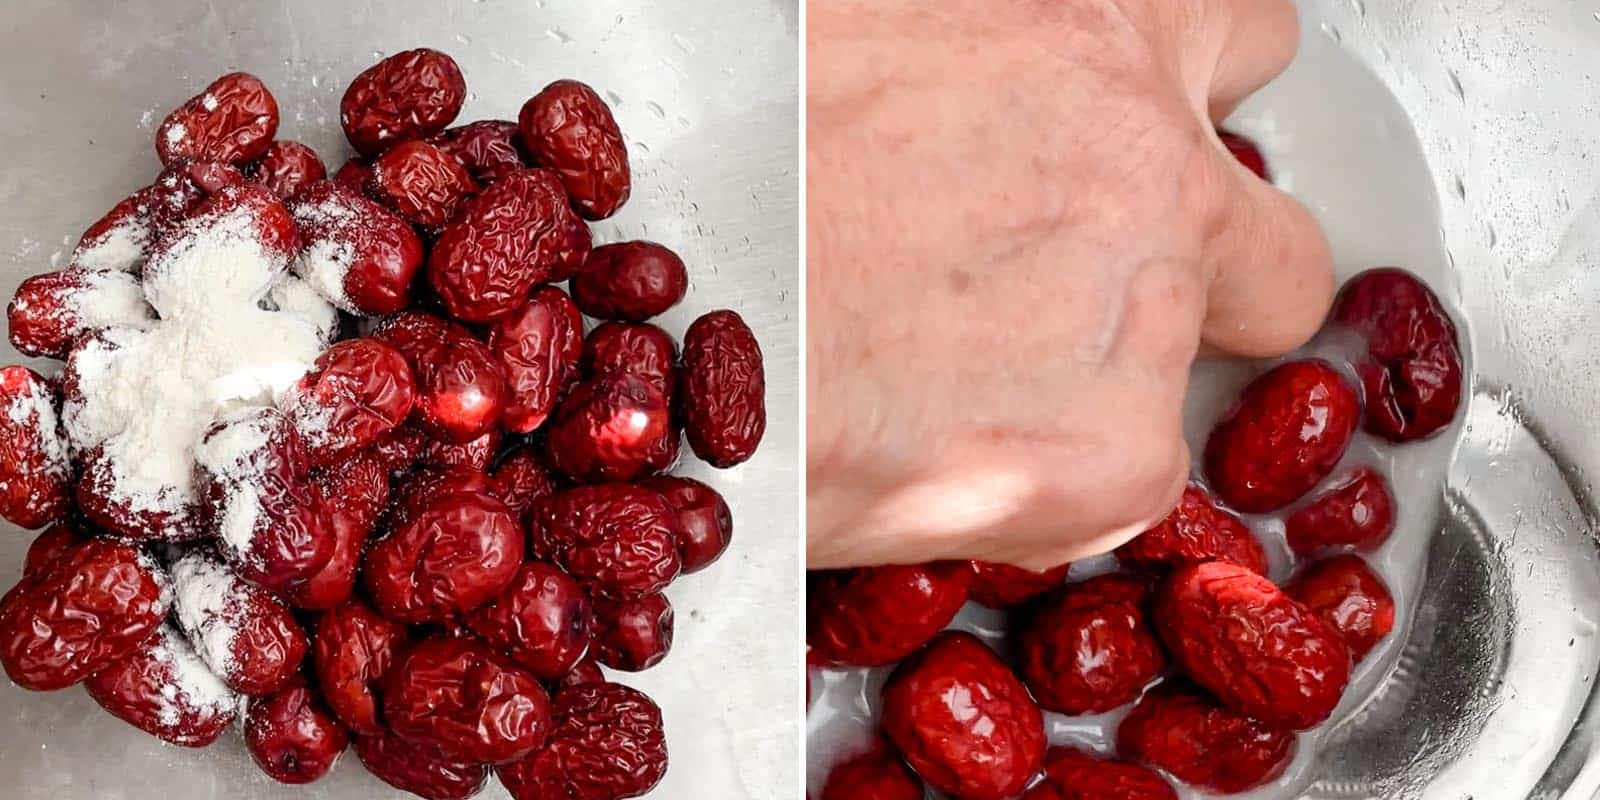 Rinsing Red Dates with salt and flour